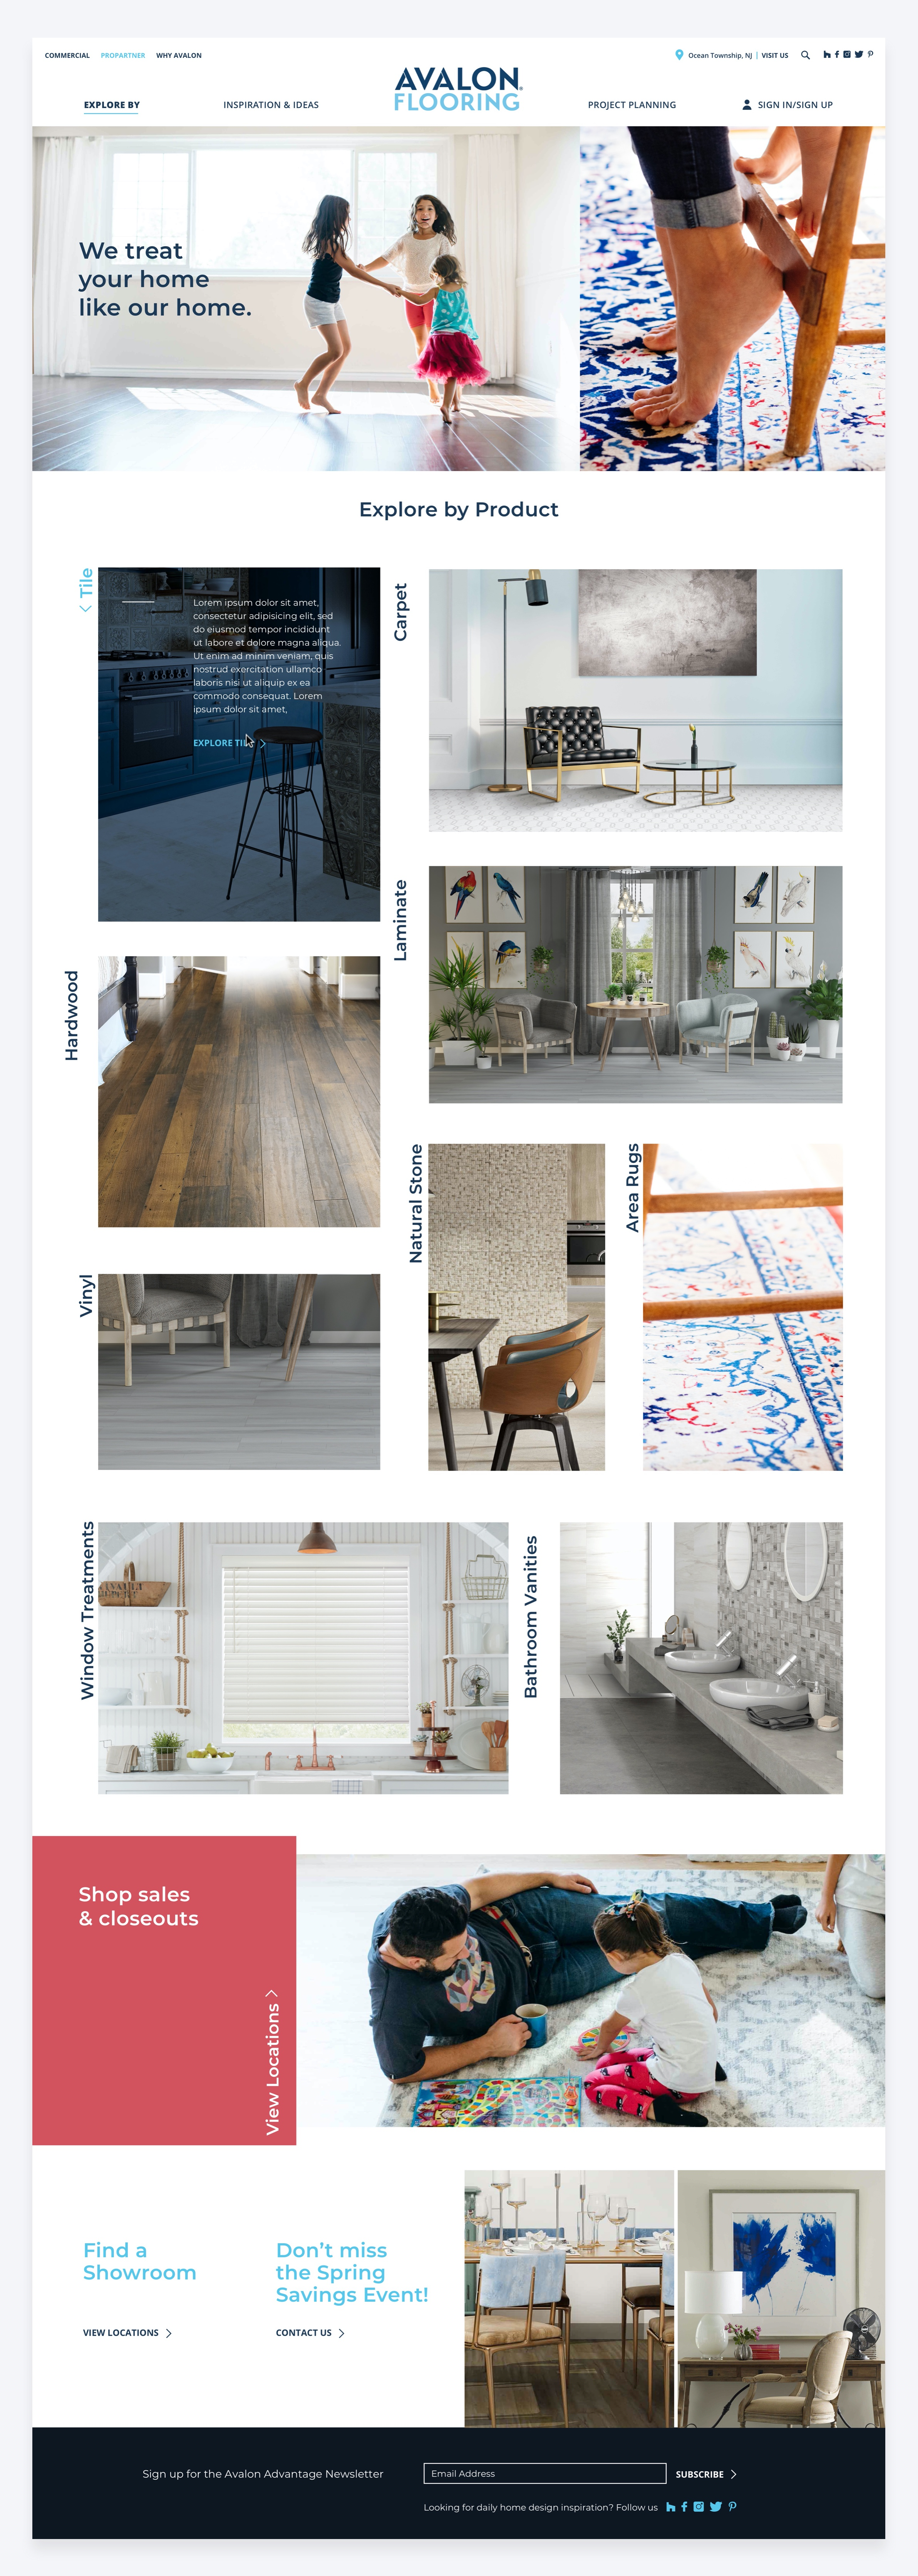 High-fidelity final design of the Avalon Flooring homepage